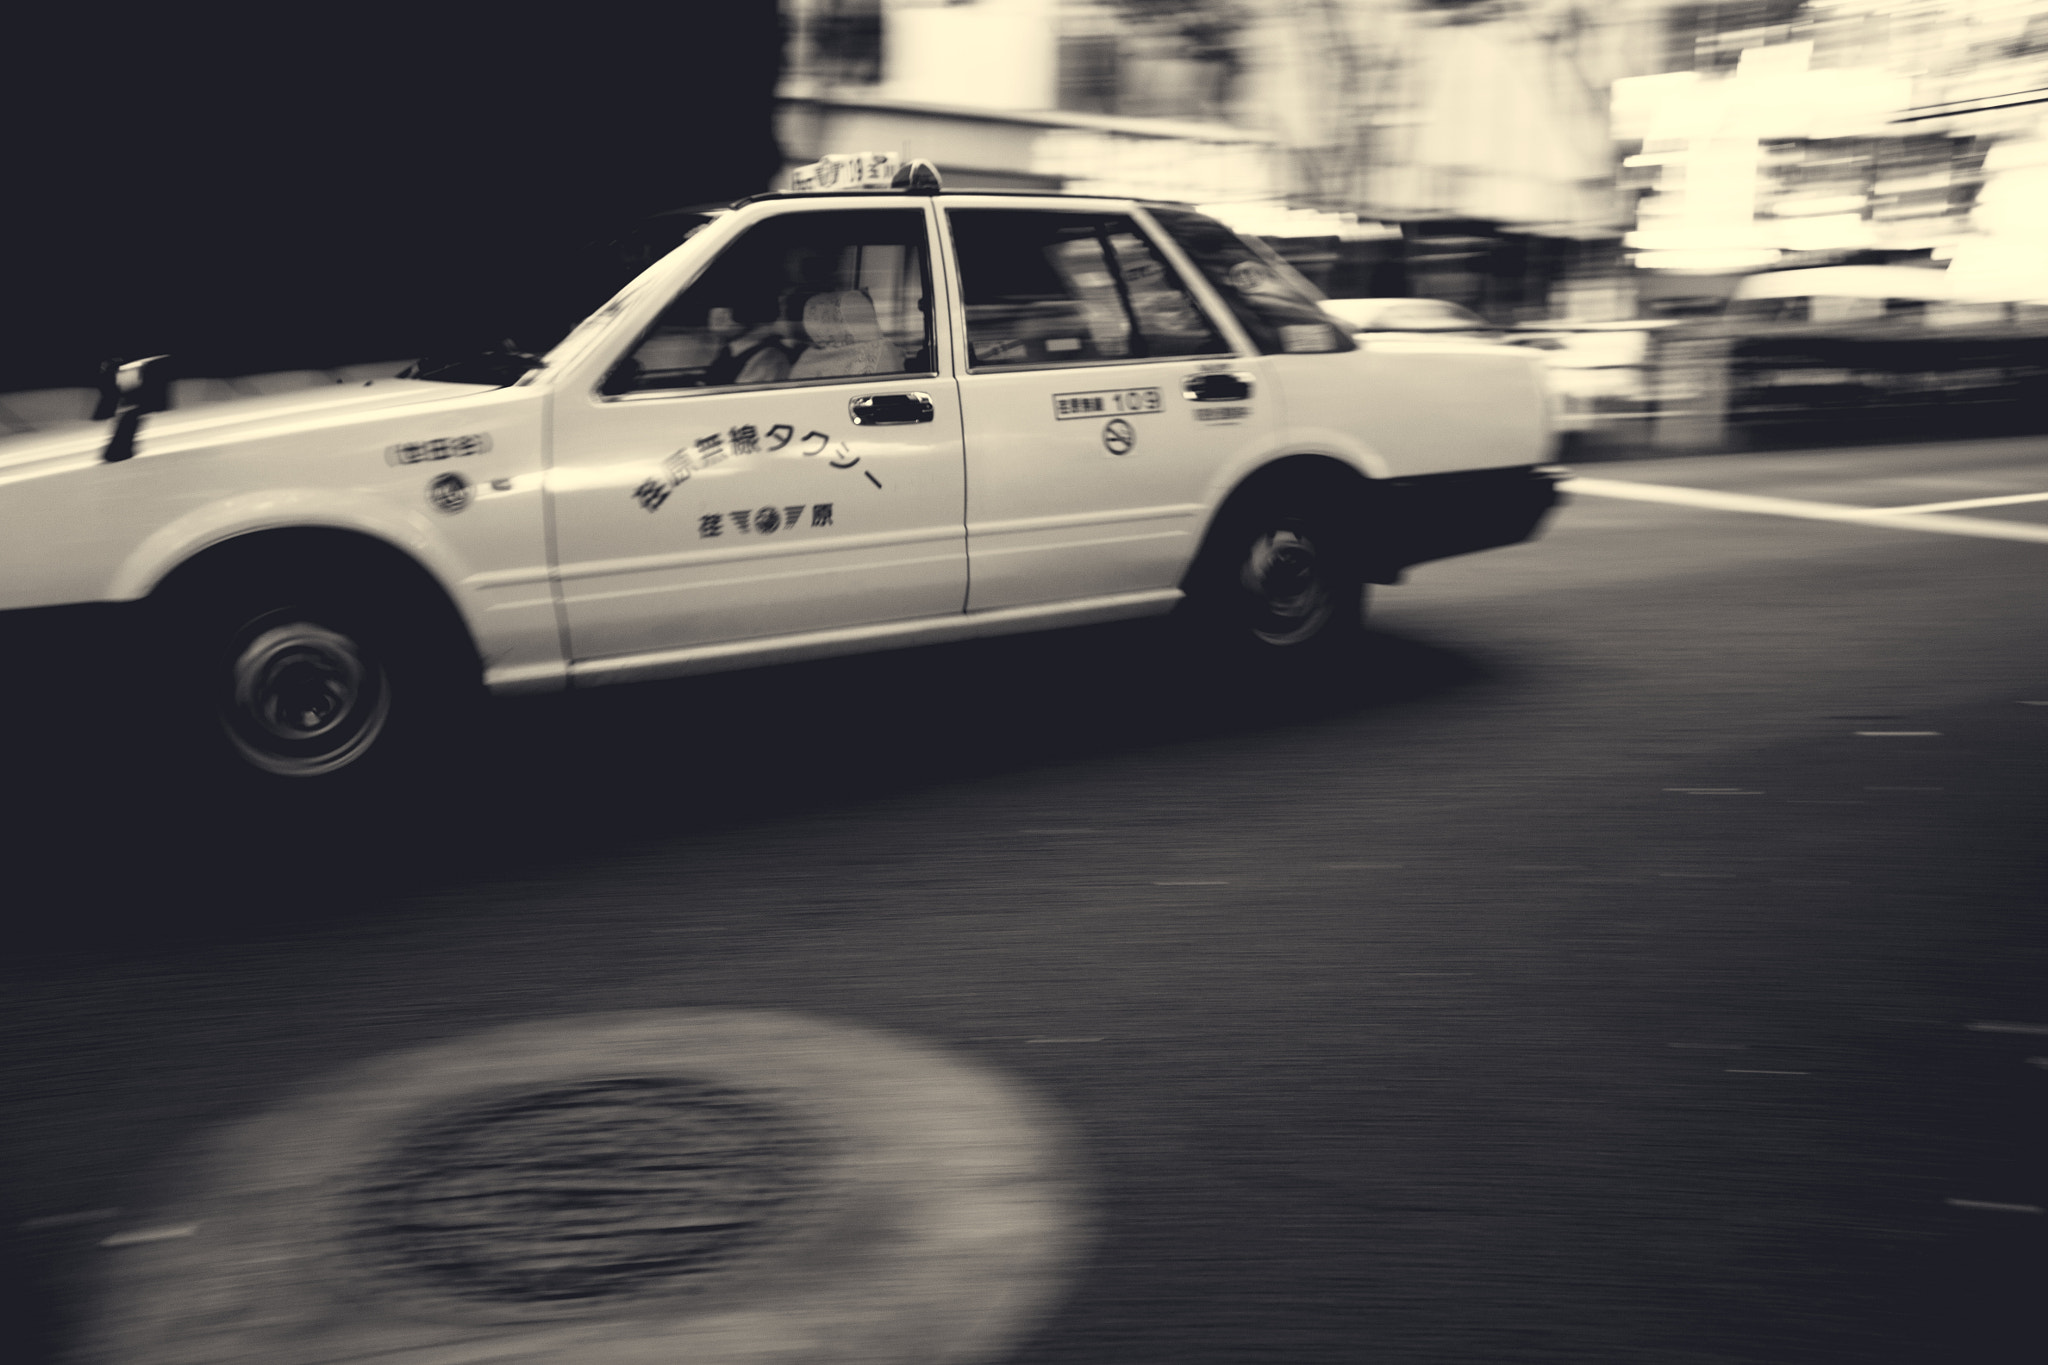 Photograph Taxi by Mark Esguerra on 500px